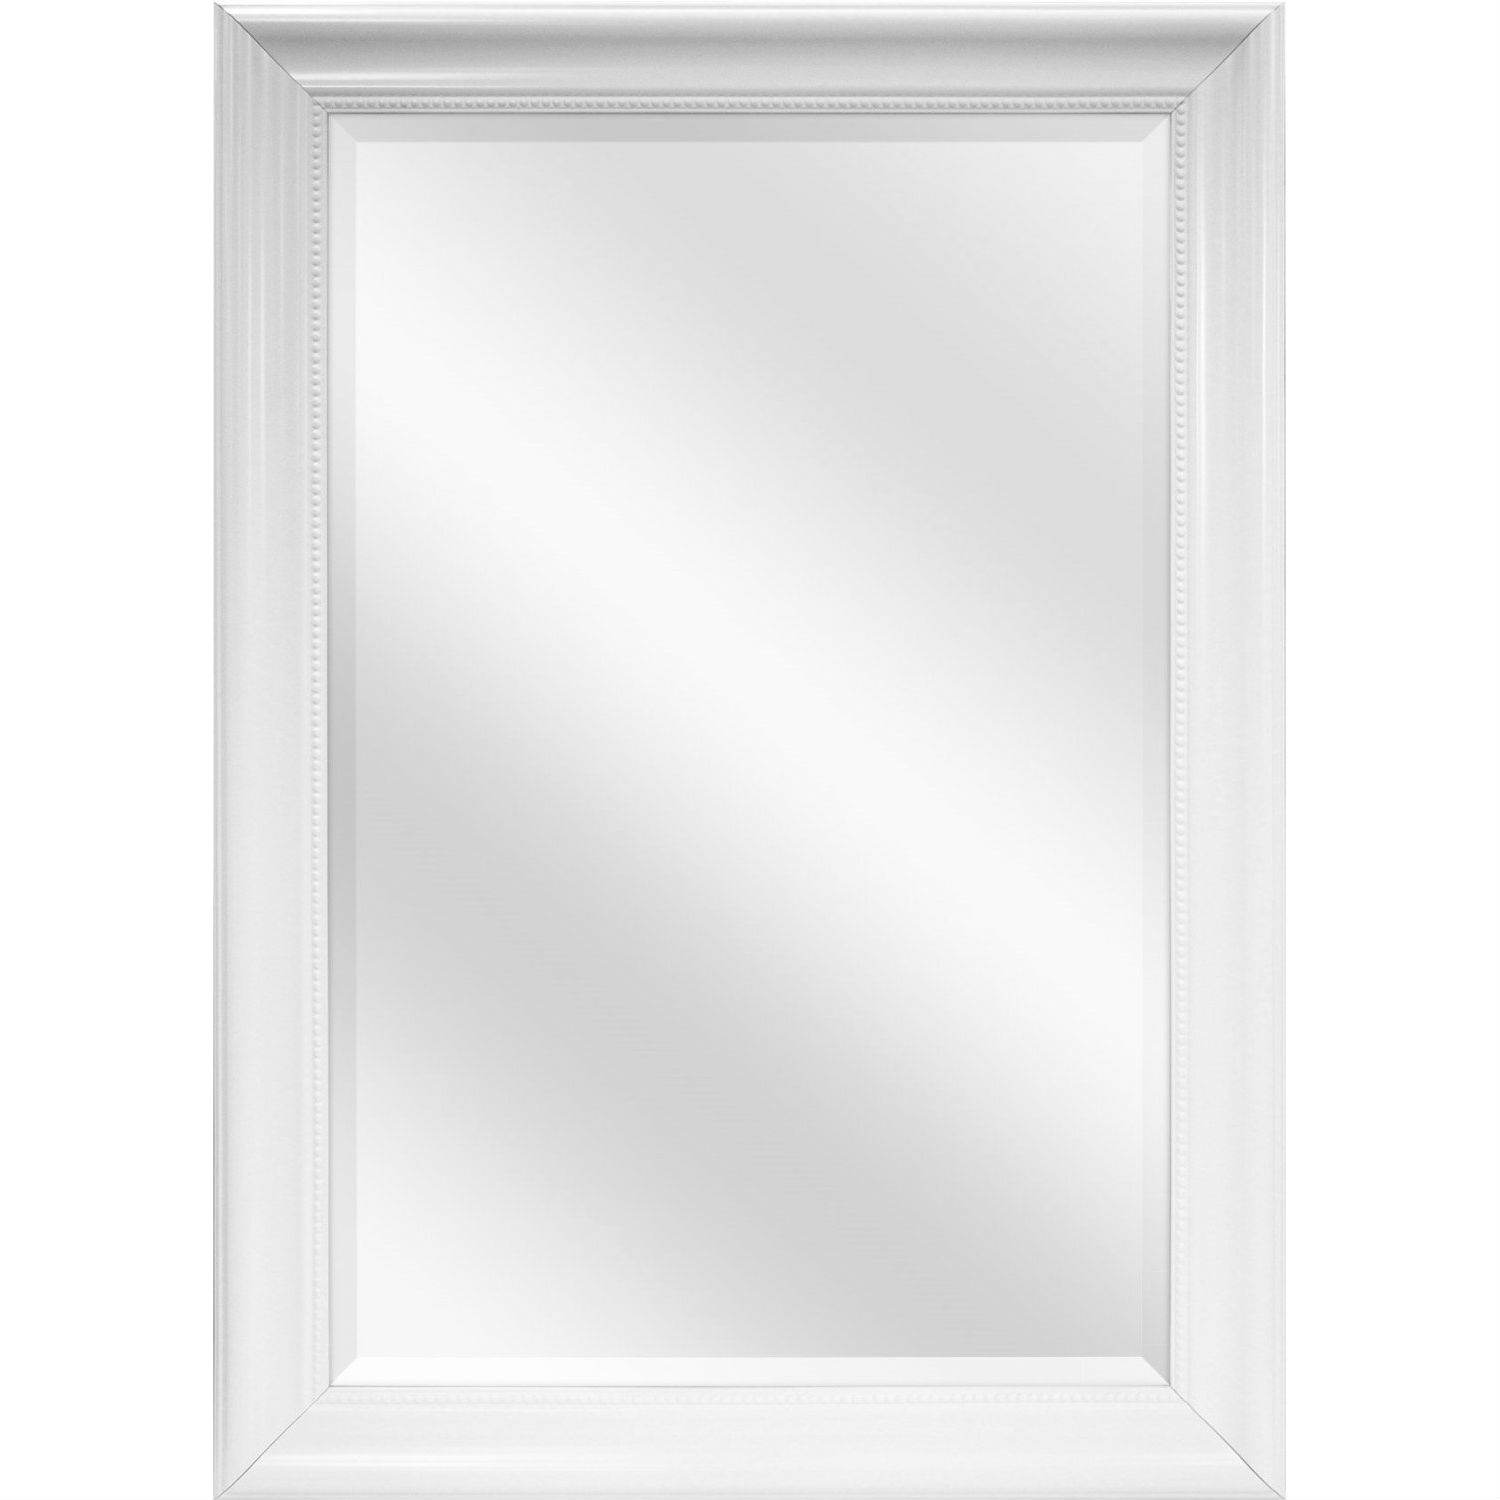 Large Rectangular Bathroom Wall Hanging Mirror With White Frame